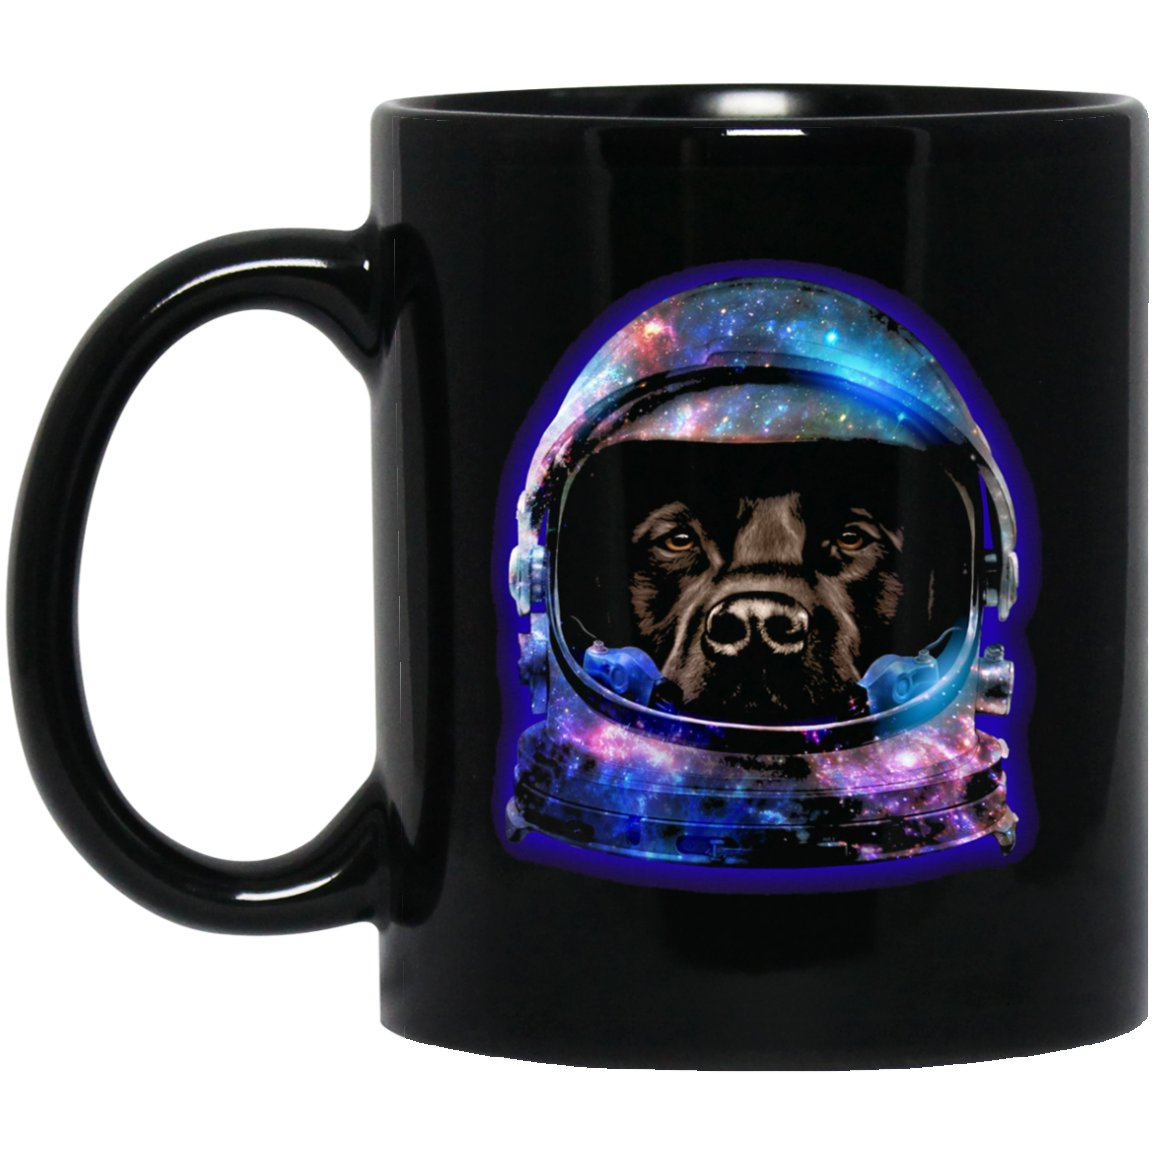 Brown Labrador Dog in Space Galaxy Astronaut Helmet Black  Mug Black Ceramic 11oz Coffee Tea Cup